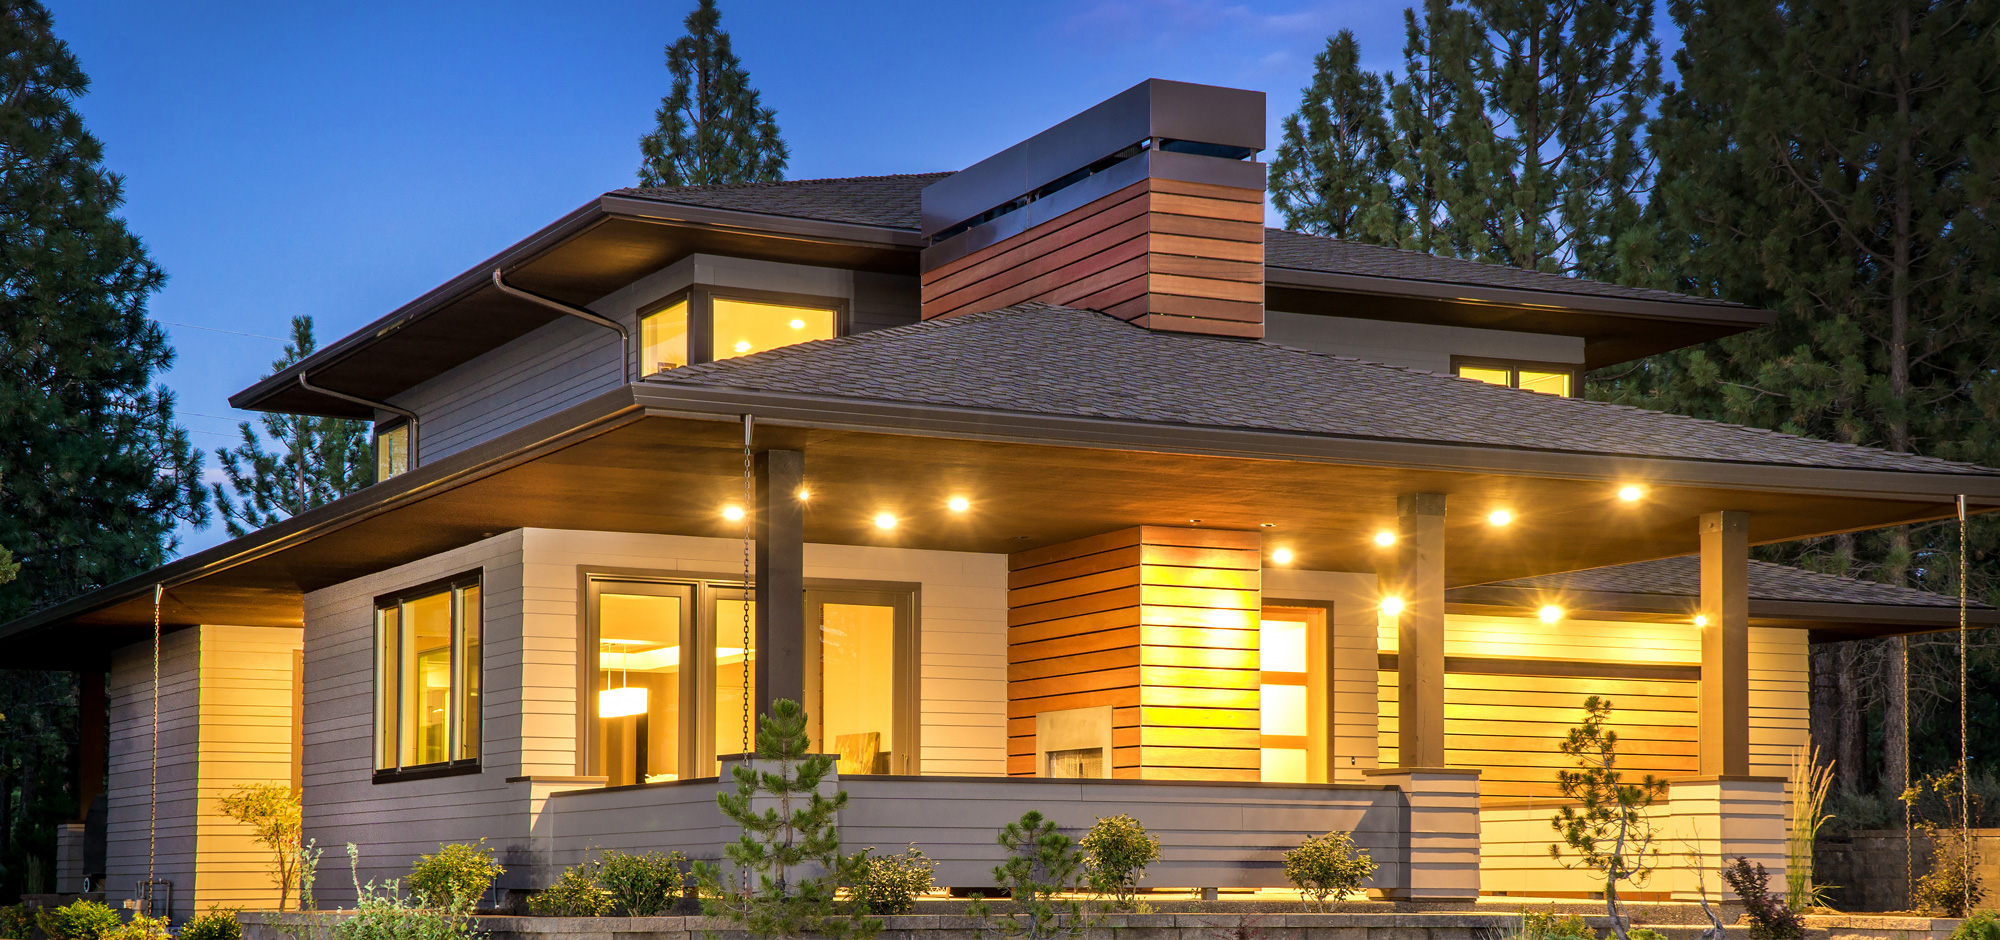 Ultra new to you rj johnson launches new architectural for Residential architecture firms